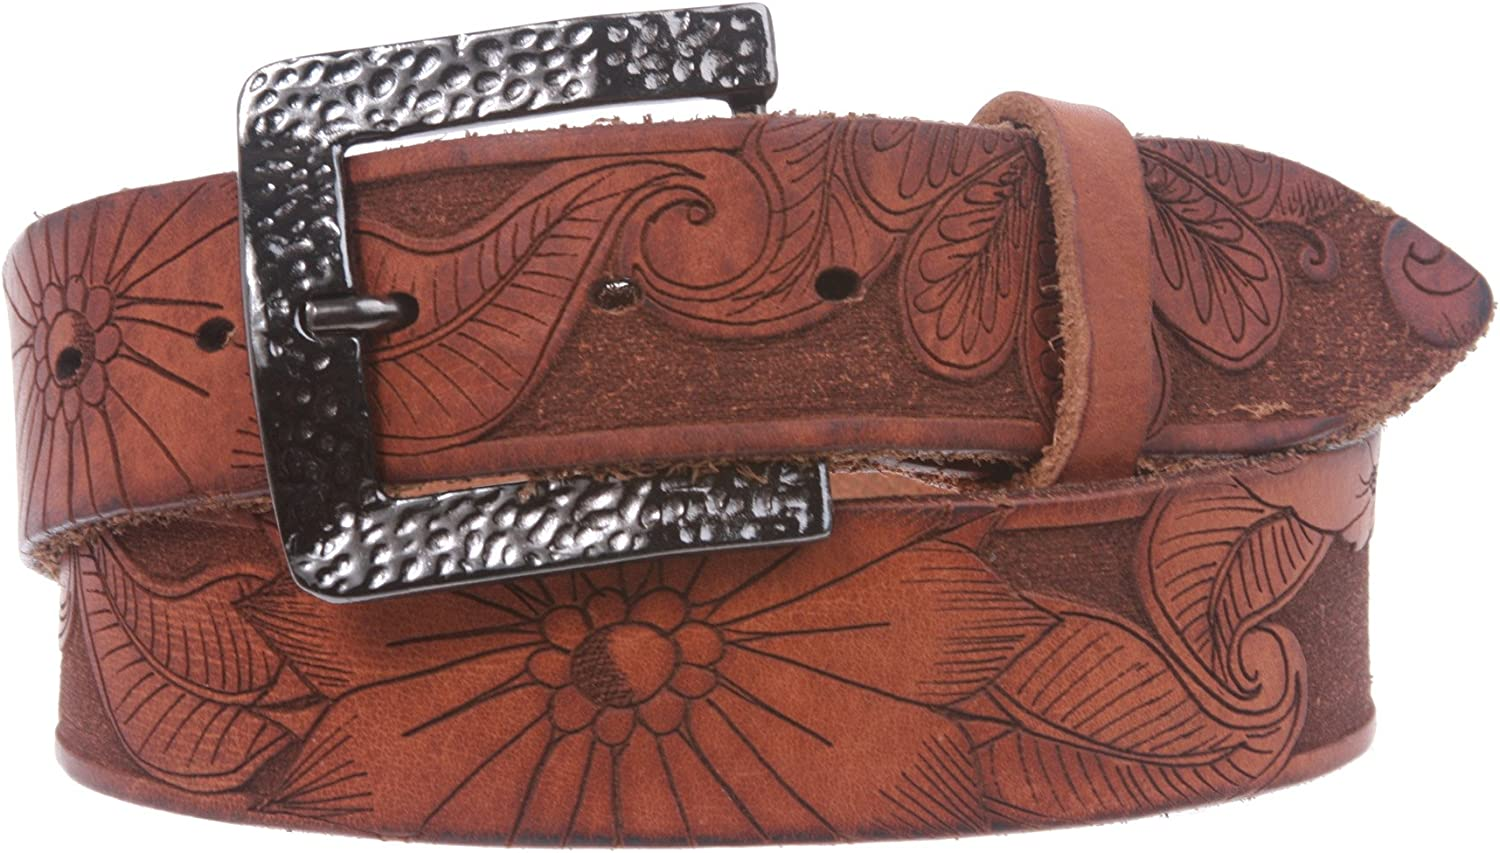 1 1 2  Snap On Soft Hand Floral Engraving Full Grain Leather Belt, Tan   36